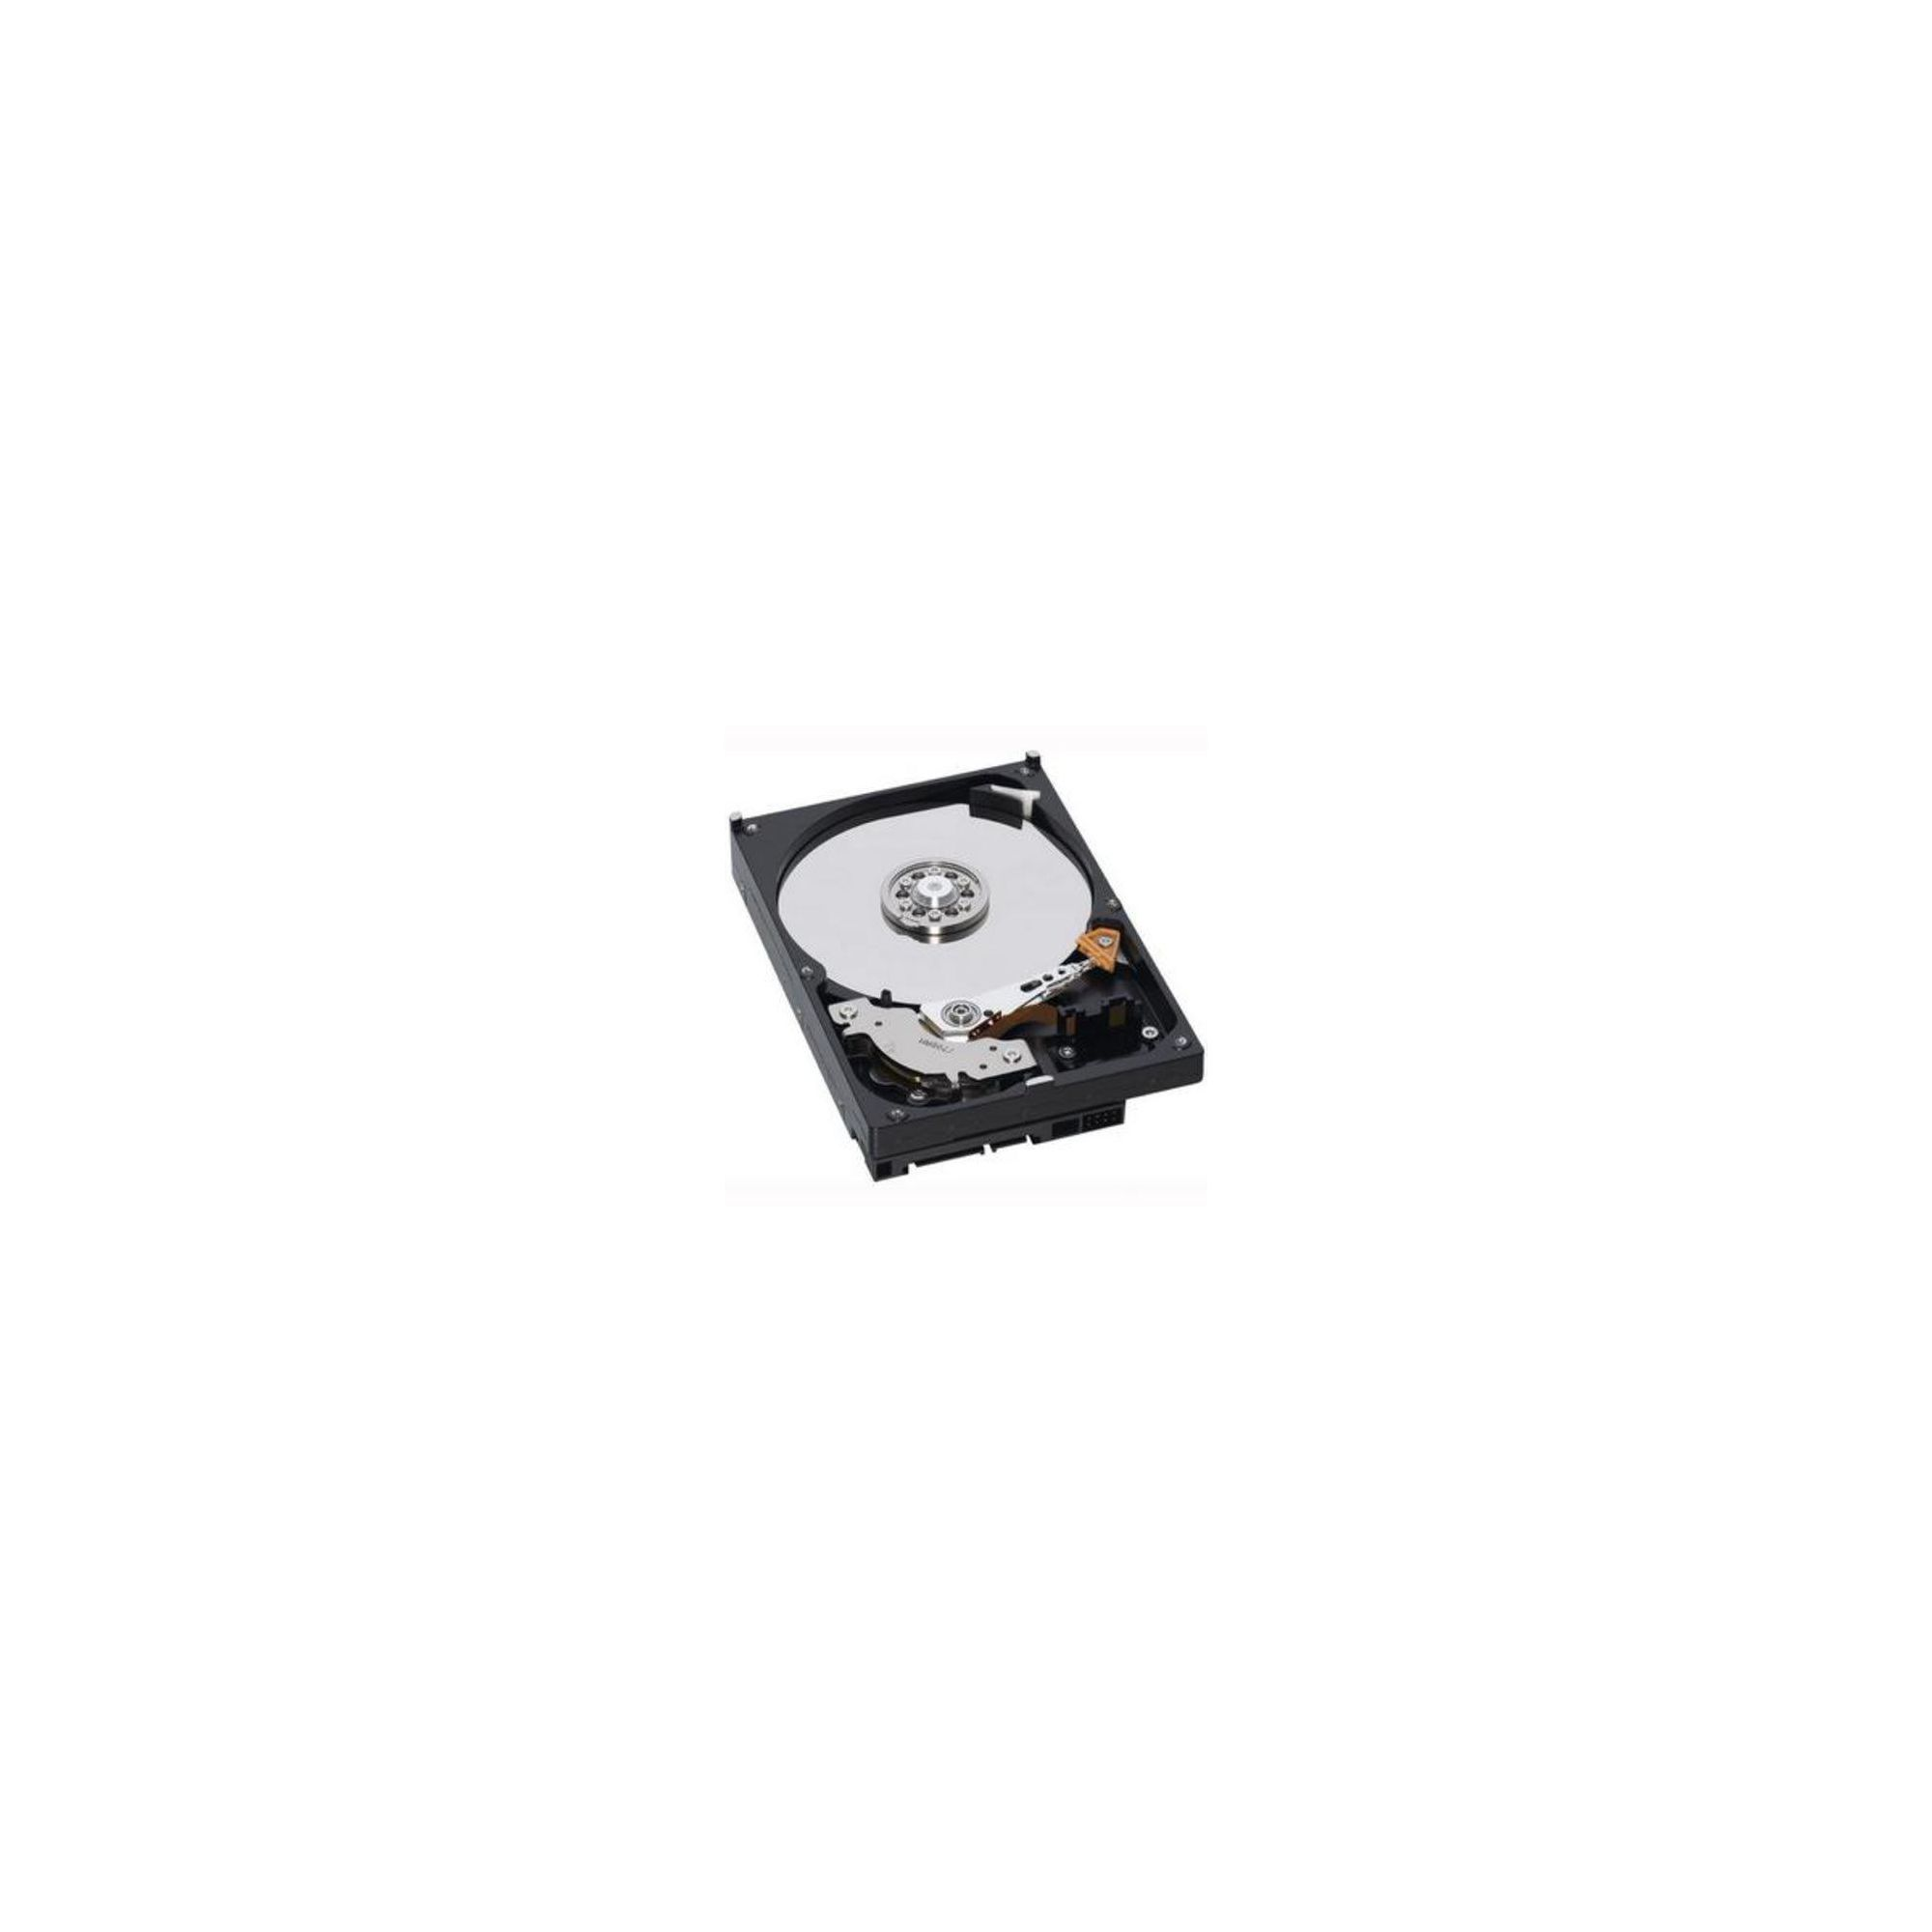 IBM 49Y1866 600GB 3.5-inch Hard Drive at Tesco Direct